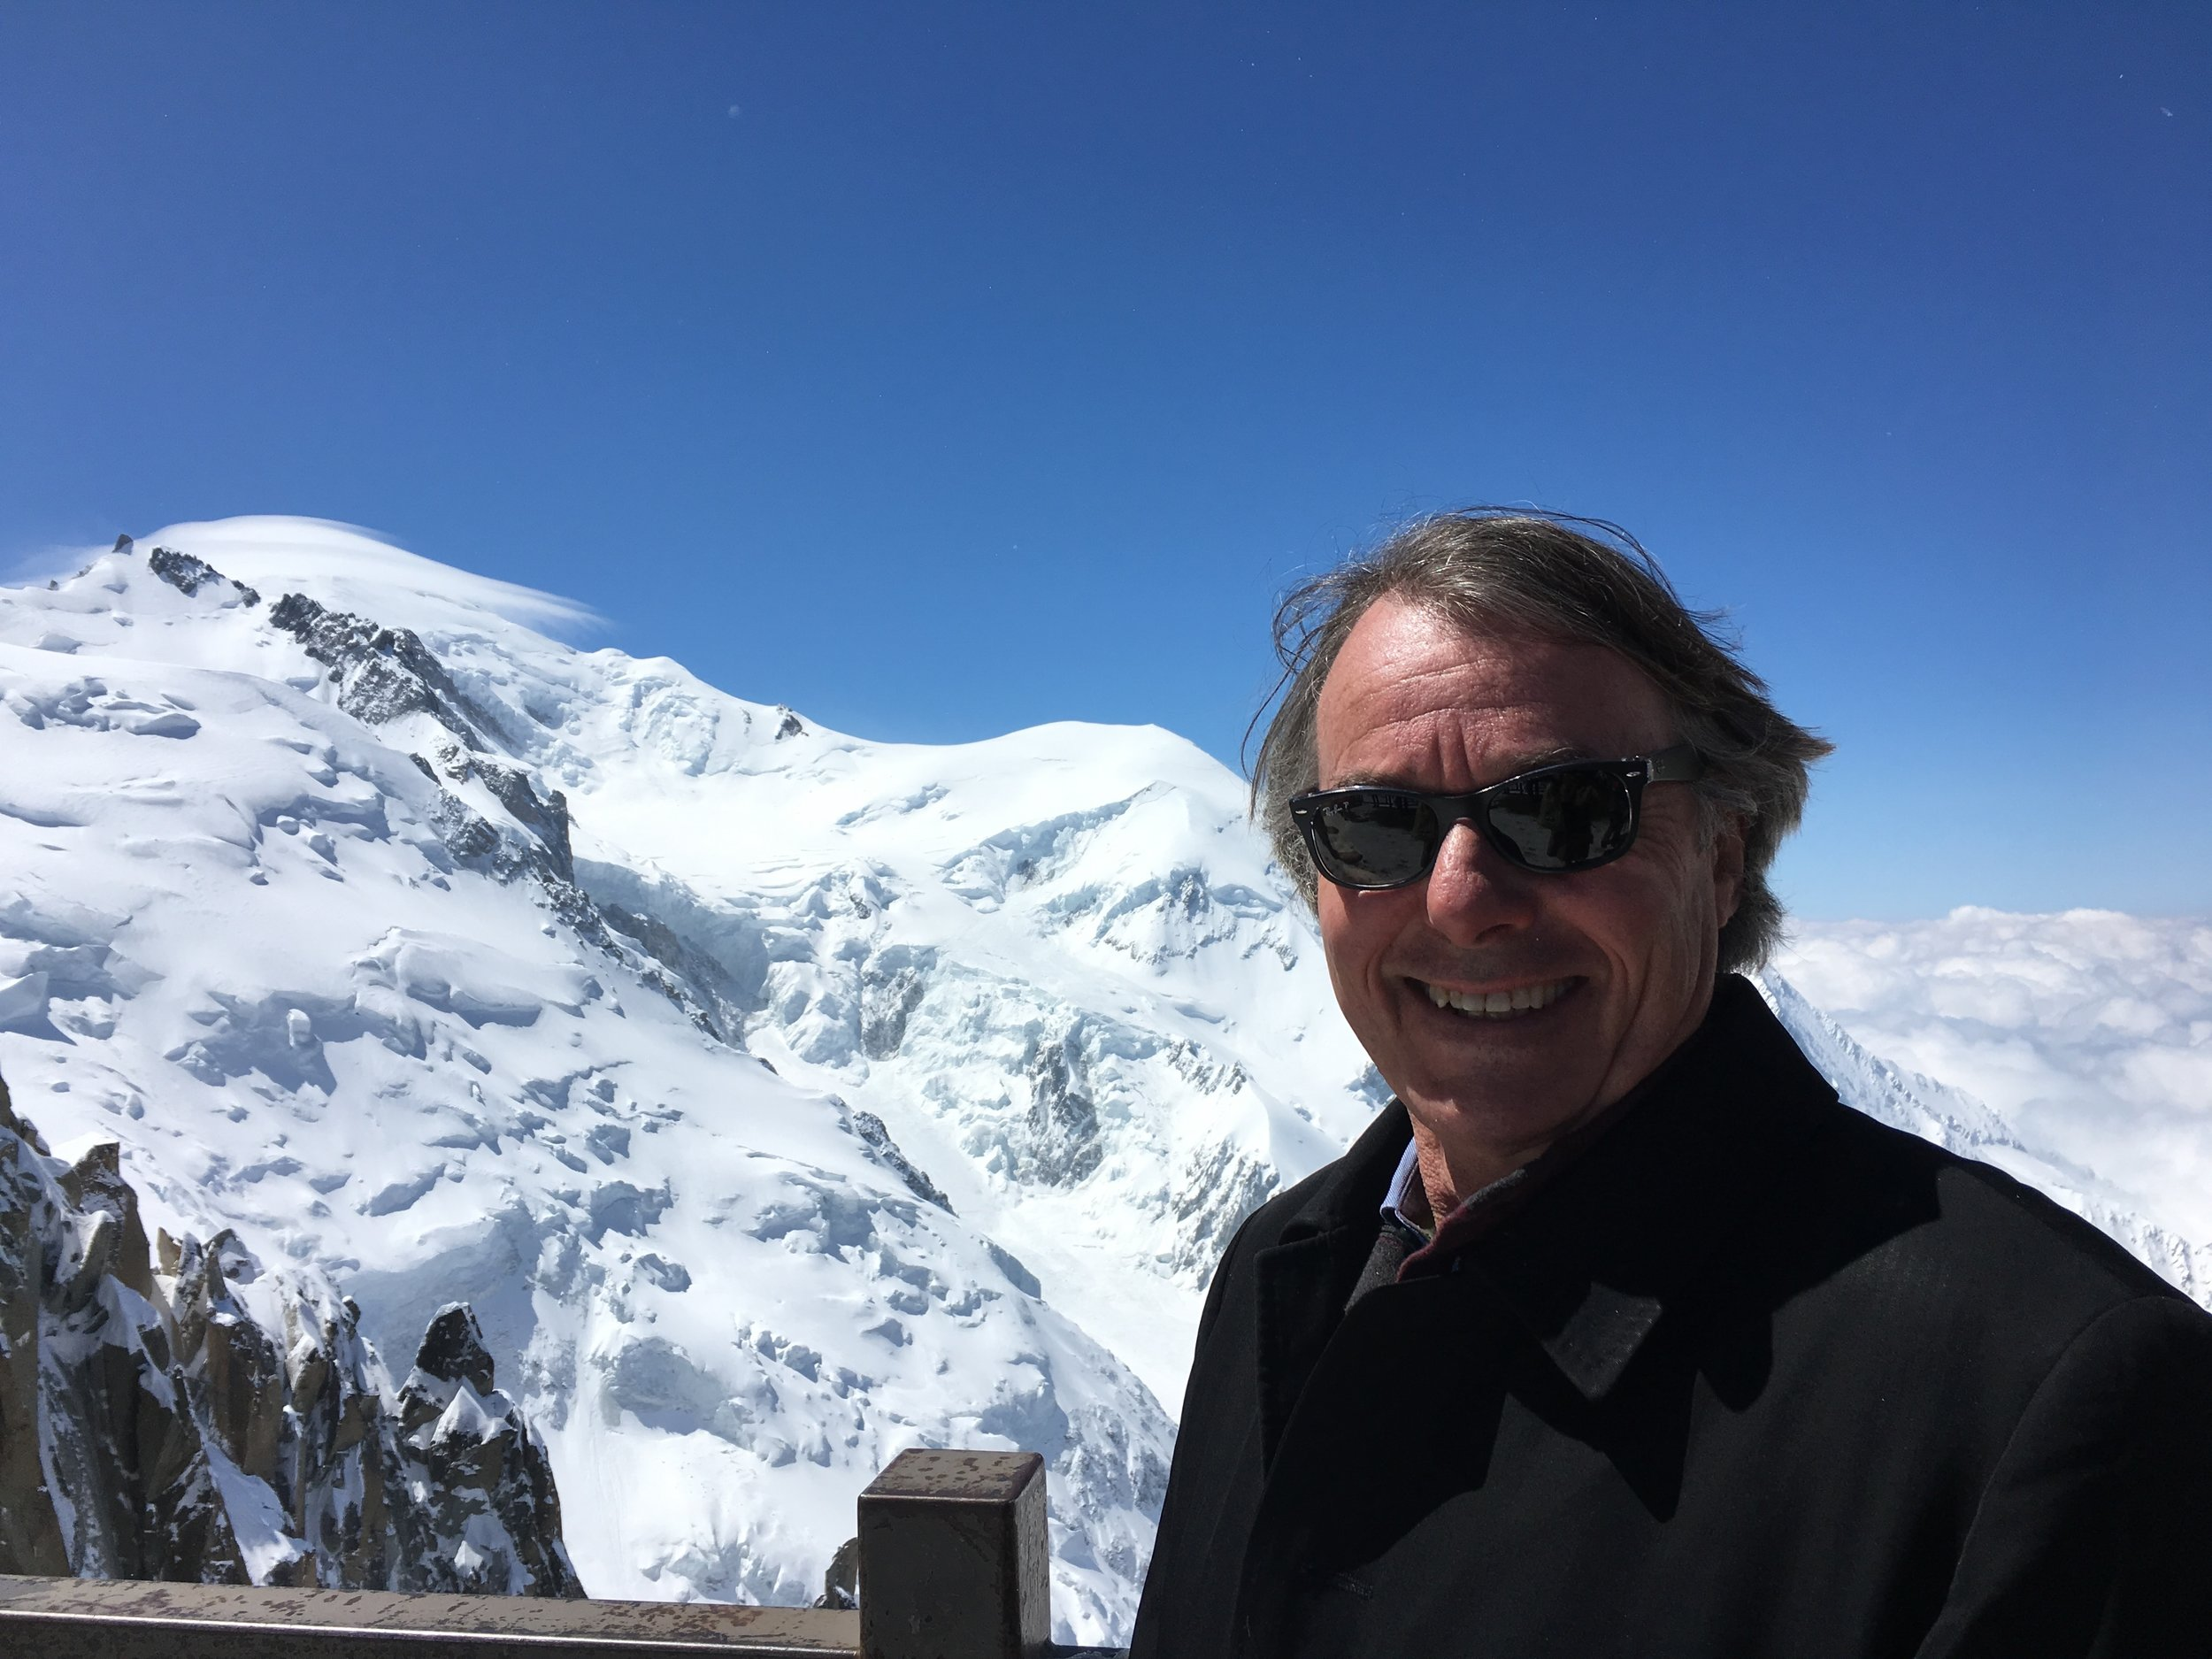 Graham with Mont Blanc in the background, 2016.